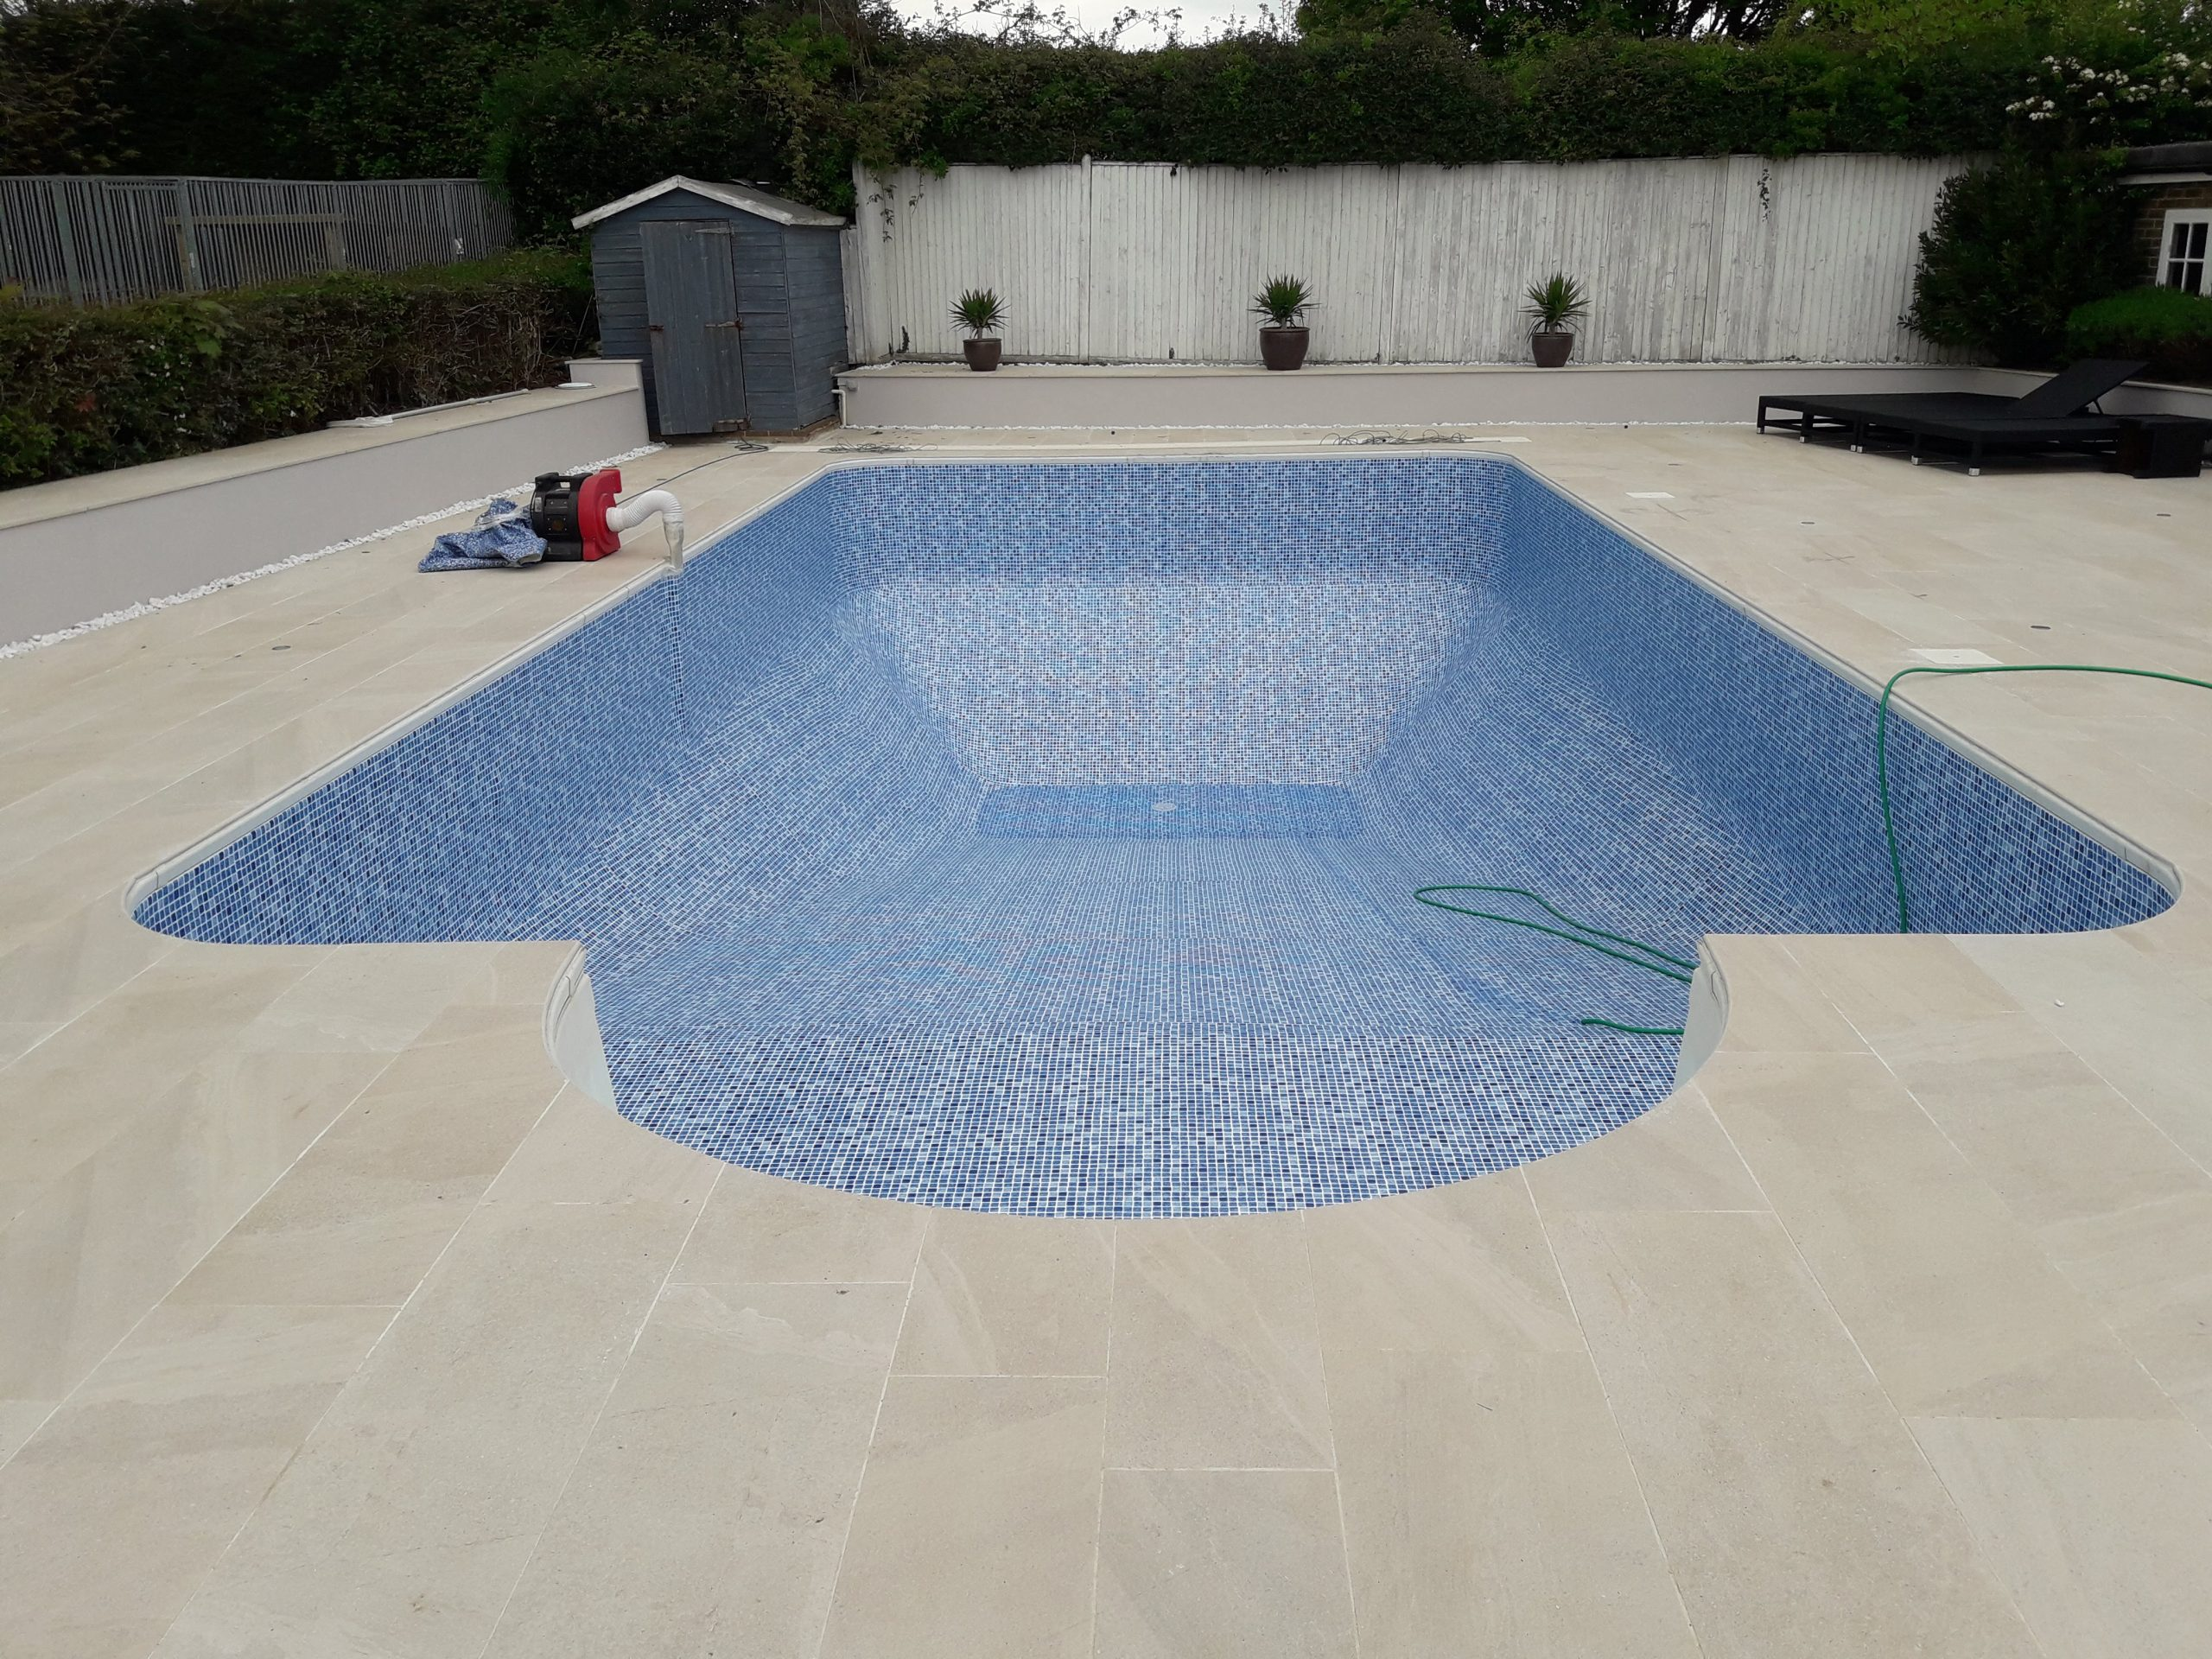 The same pool after refurbishment and new pool tiles